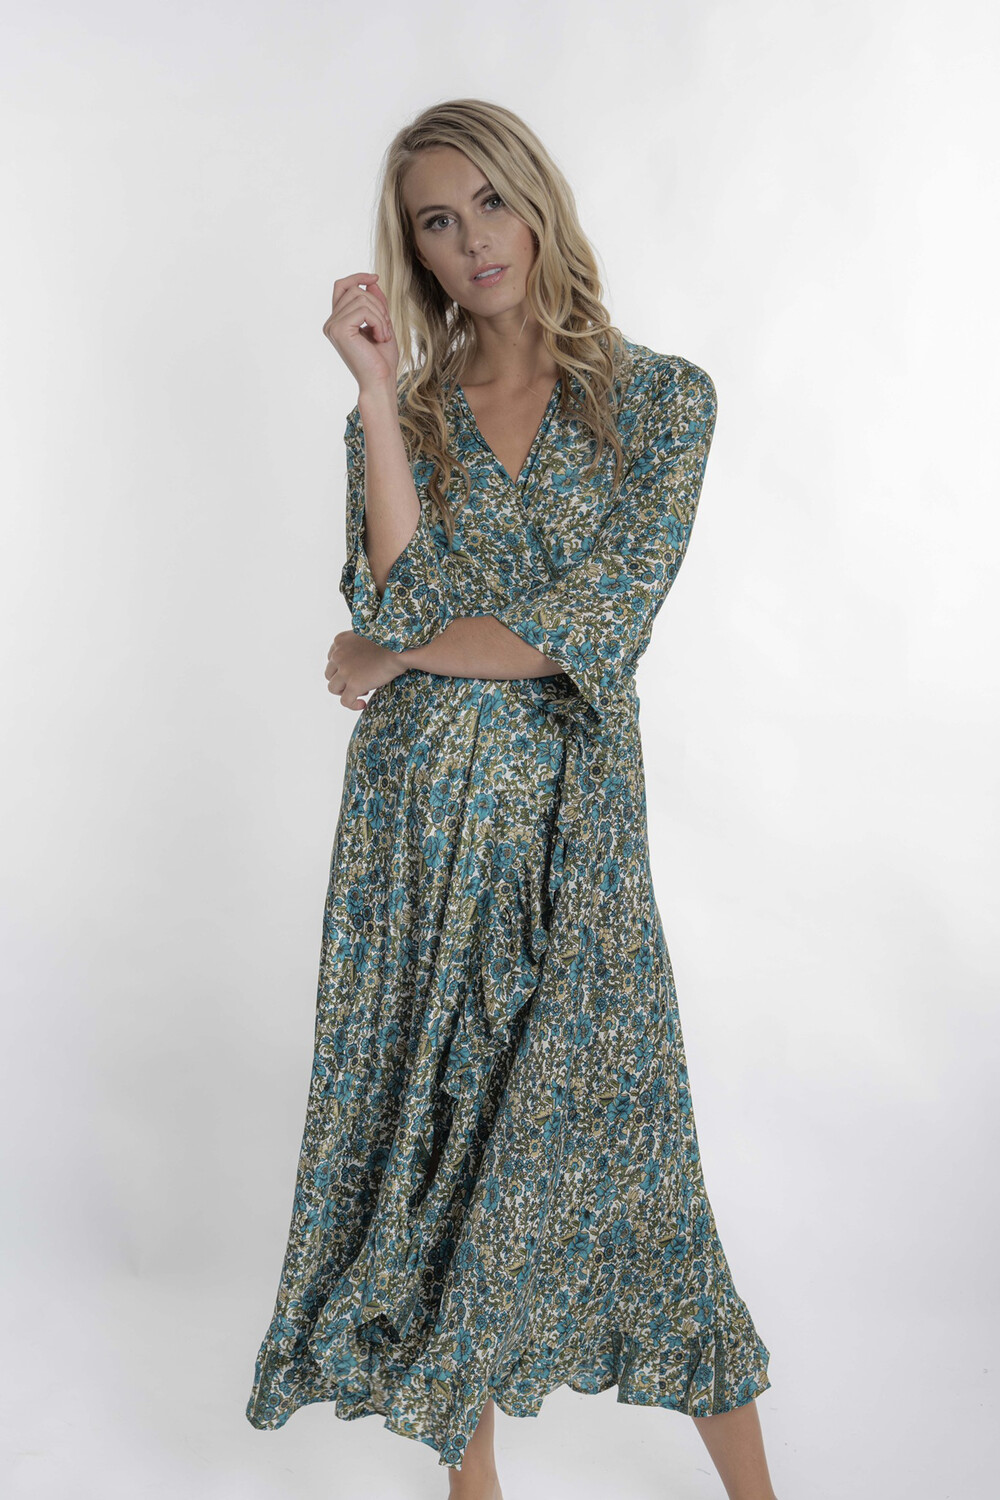 Teal Silk Floral Dress